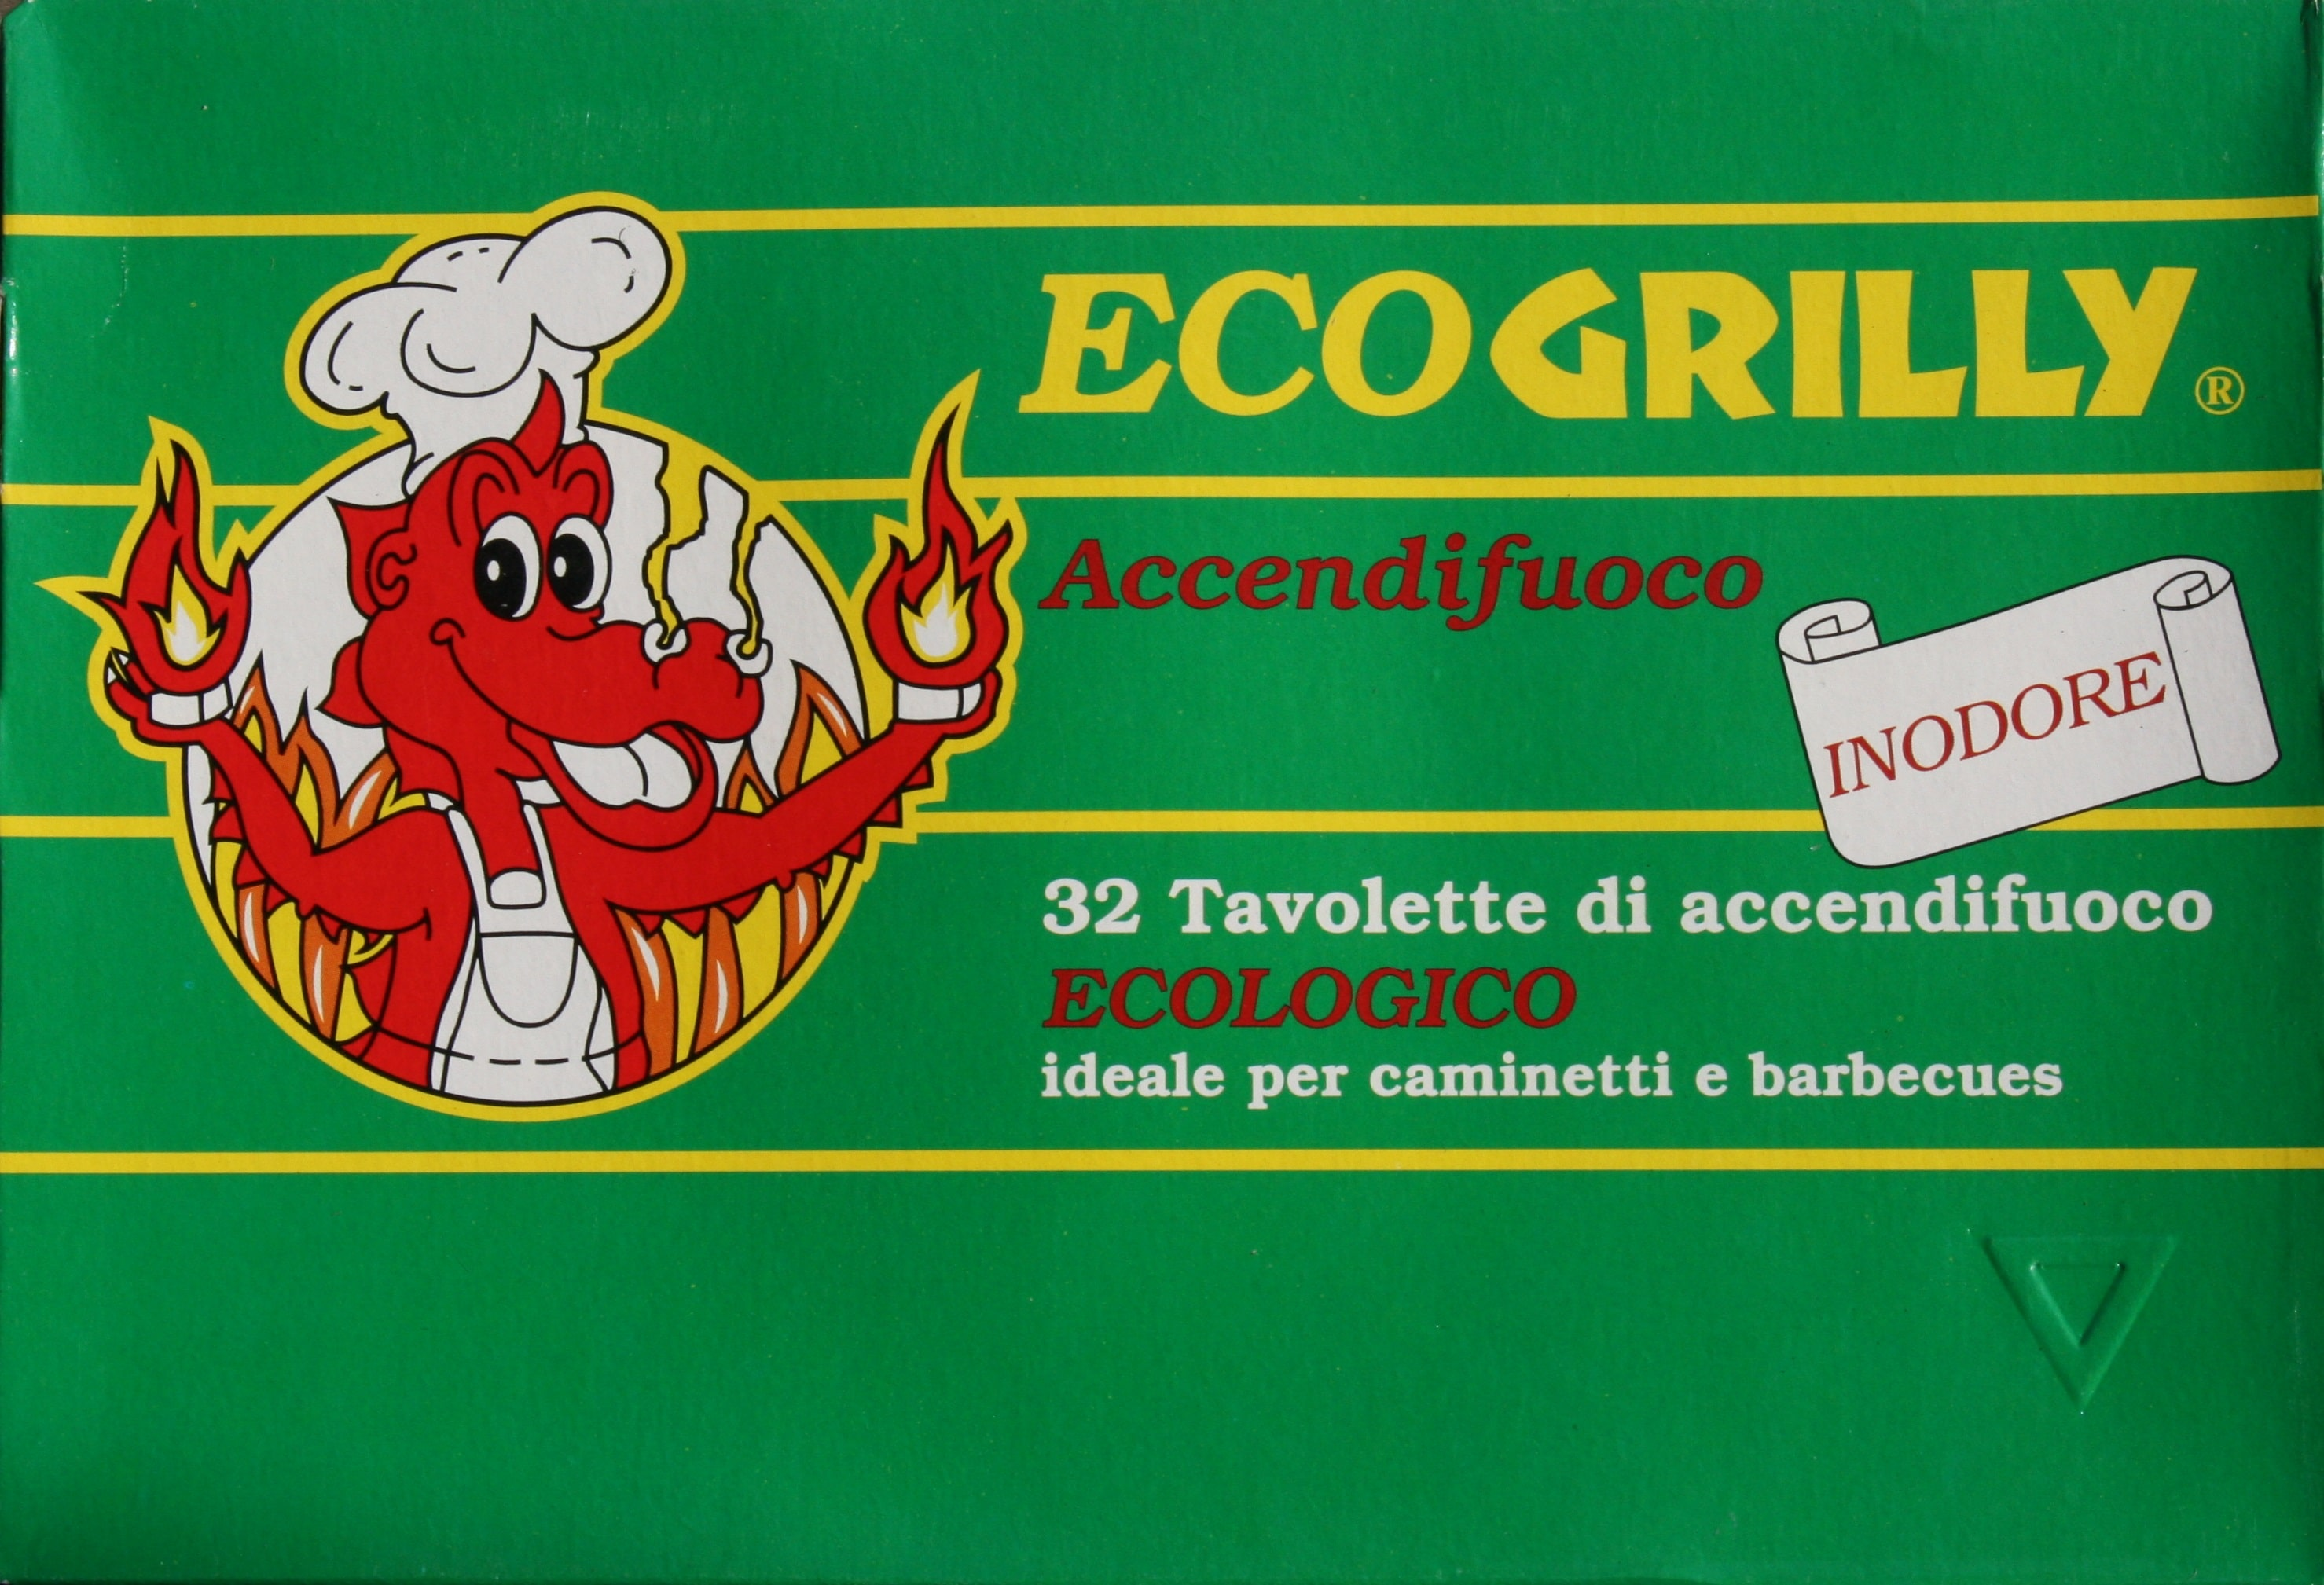 accendifuoco grilly